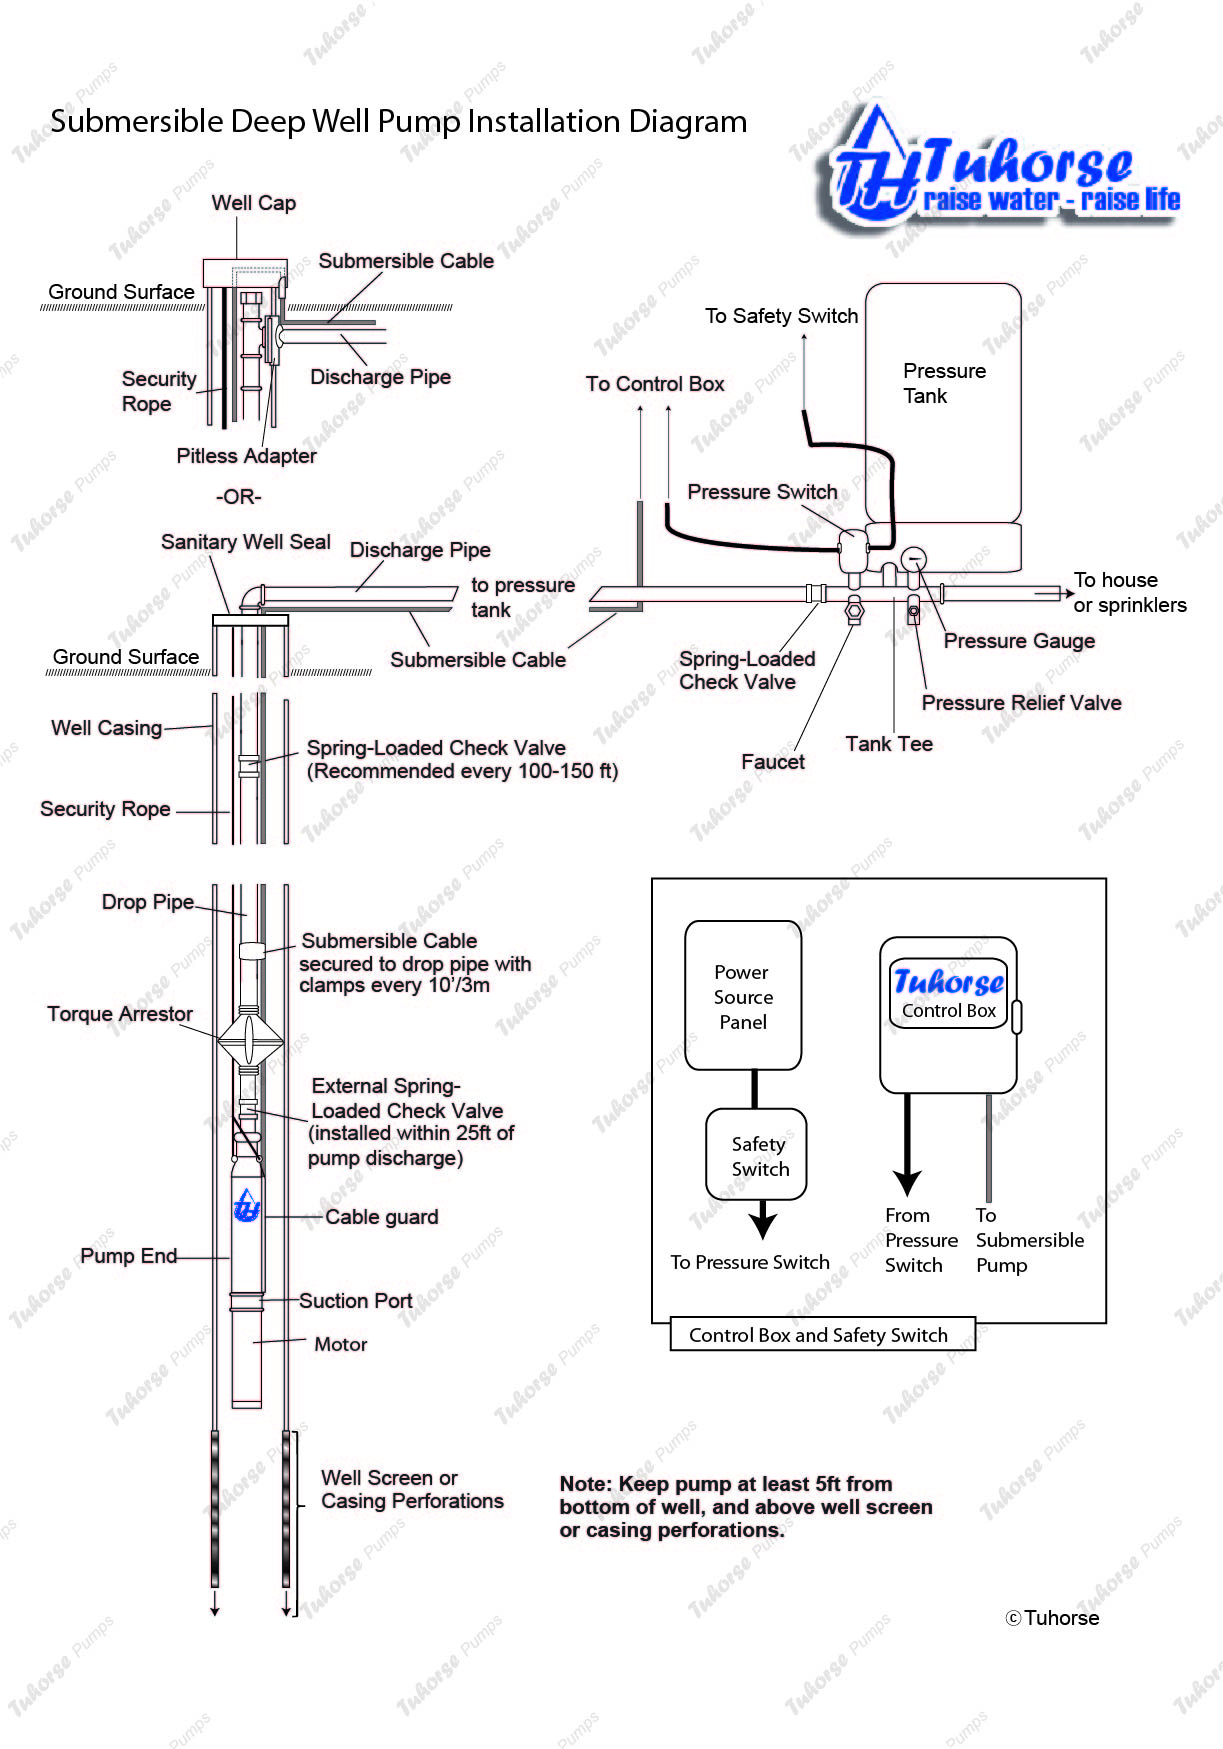 watermarkedinstallationdiagram4 pump installation 220V Well Pump Wiring Diagram at readyjetset.co